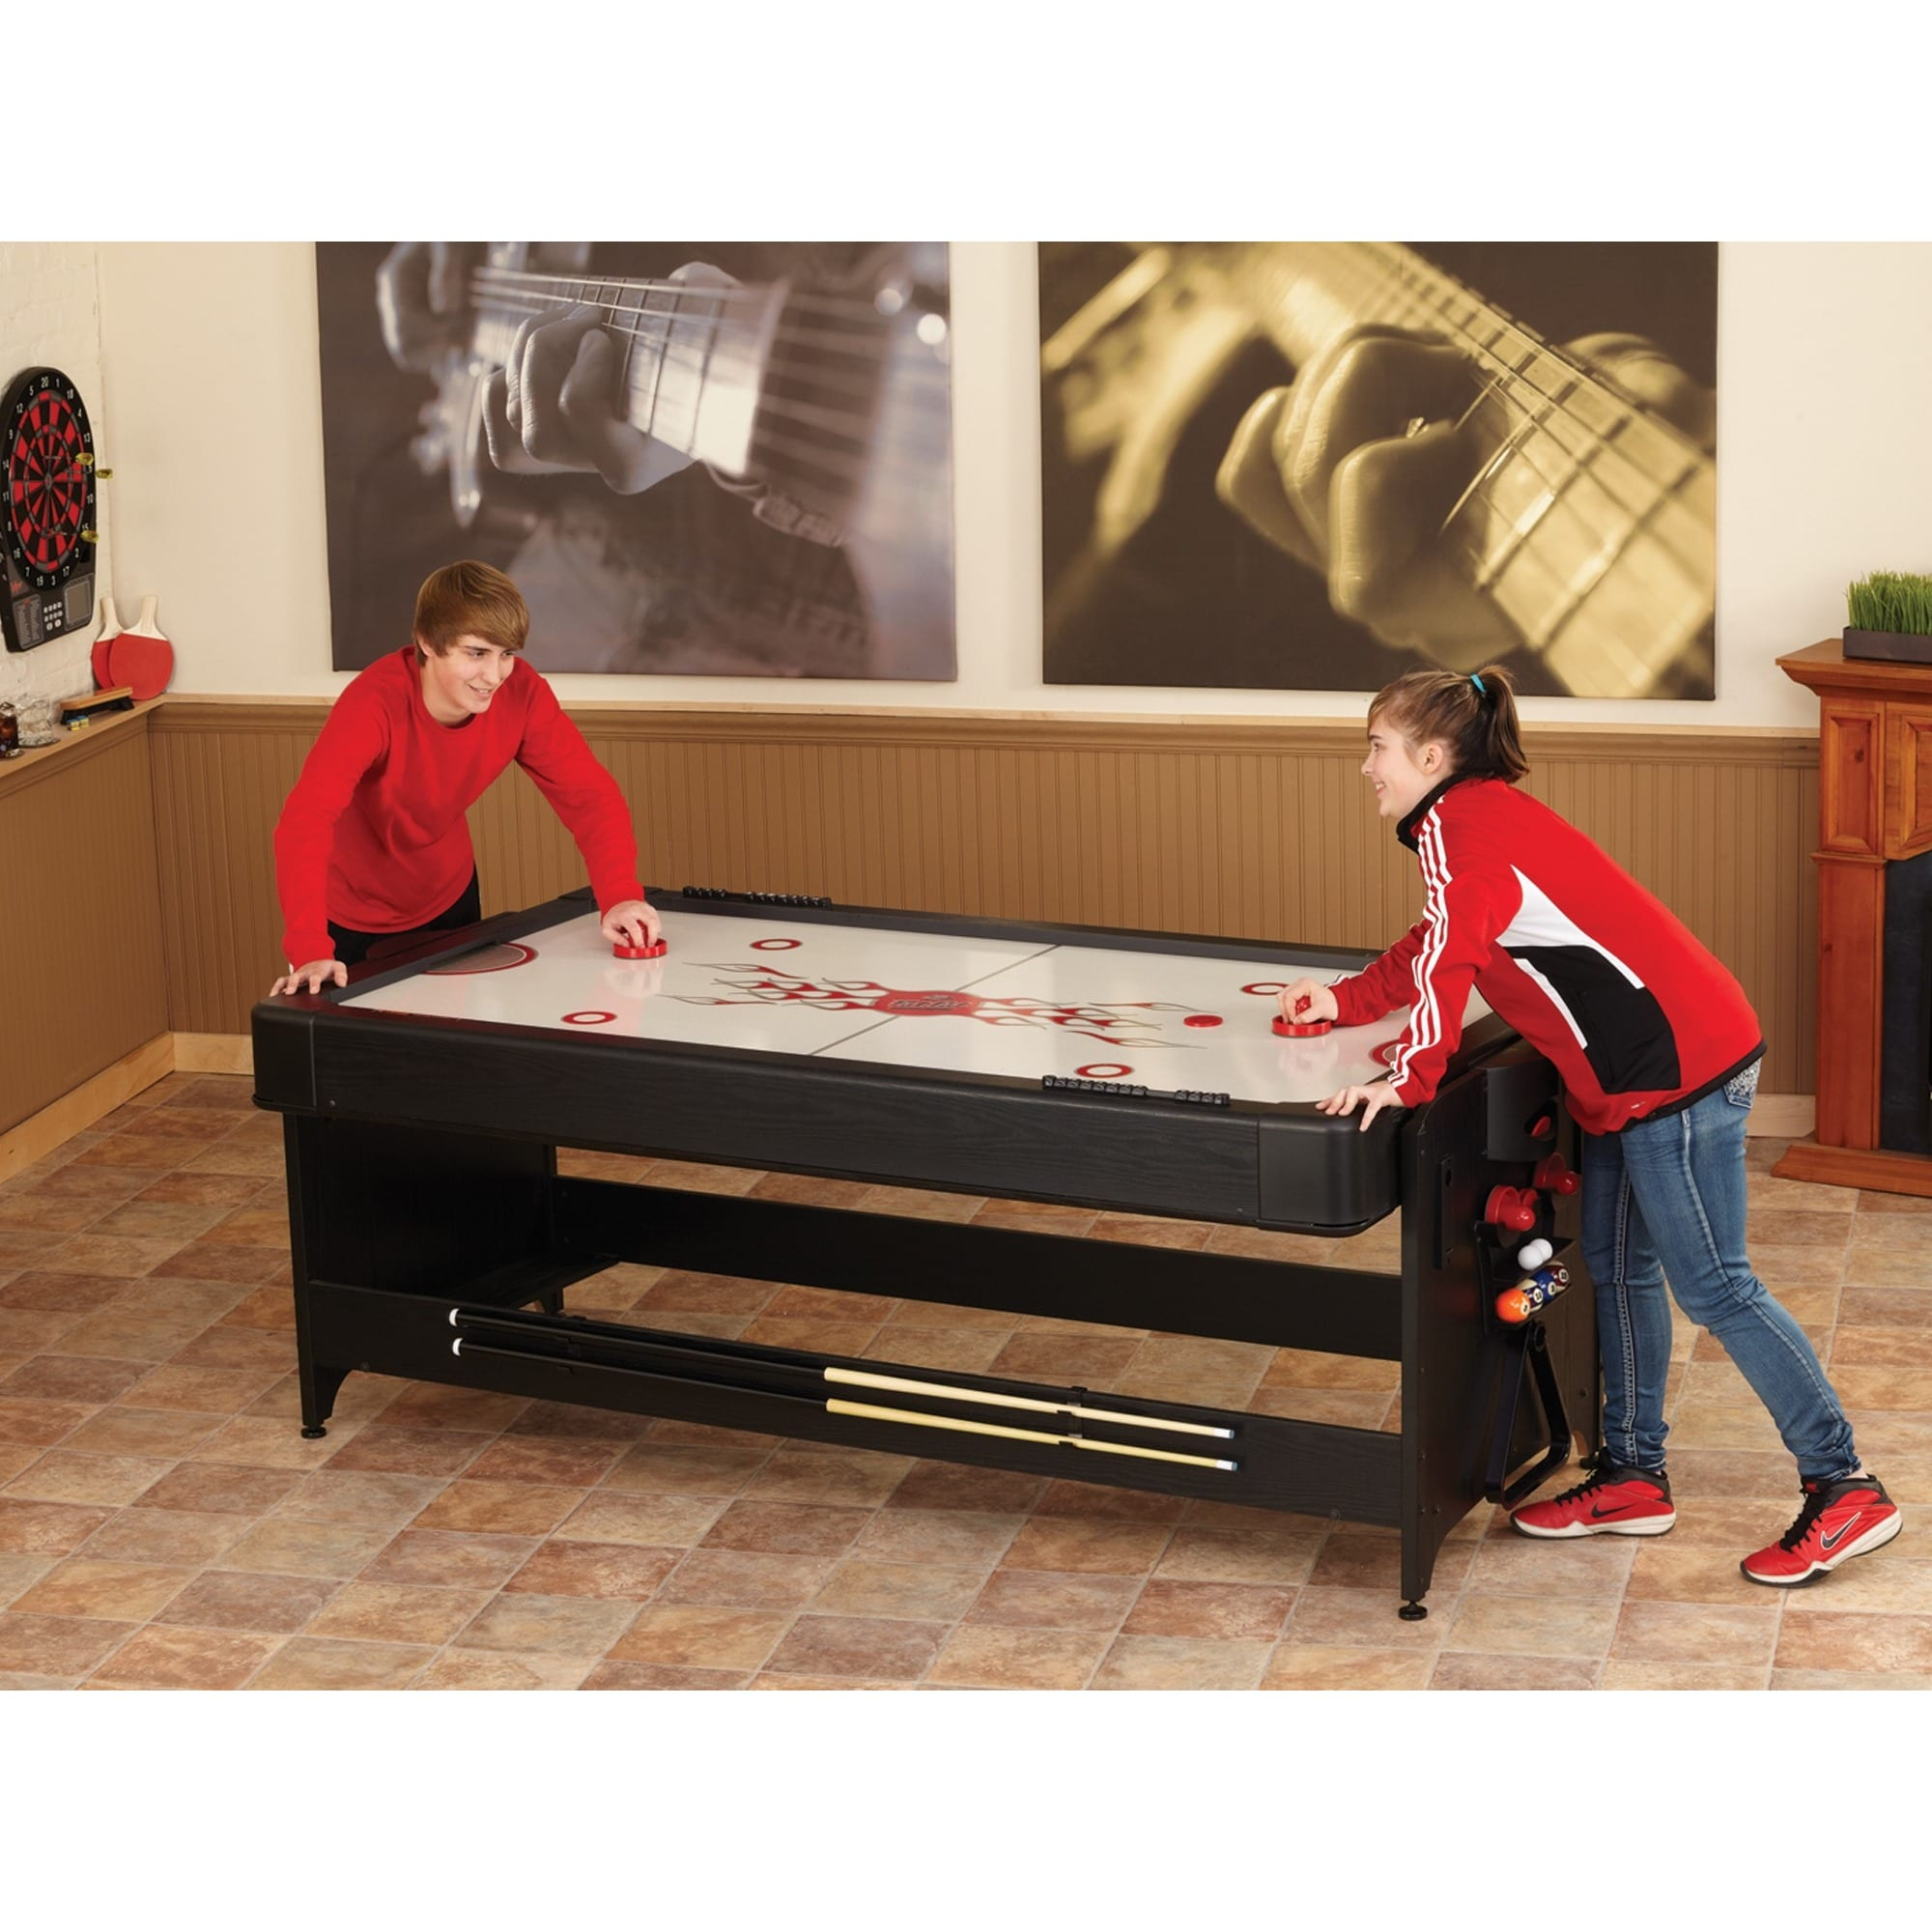 Beau Shop Fat Cat 64 1046 Original 3 In 1 7 Foot Pockey Game Table Billiards/ Air  Hockey/ Table Tennis   Black   Free Shipping Today   Overstock.com    11353994